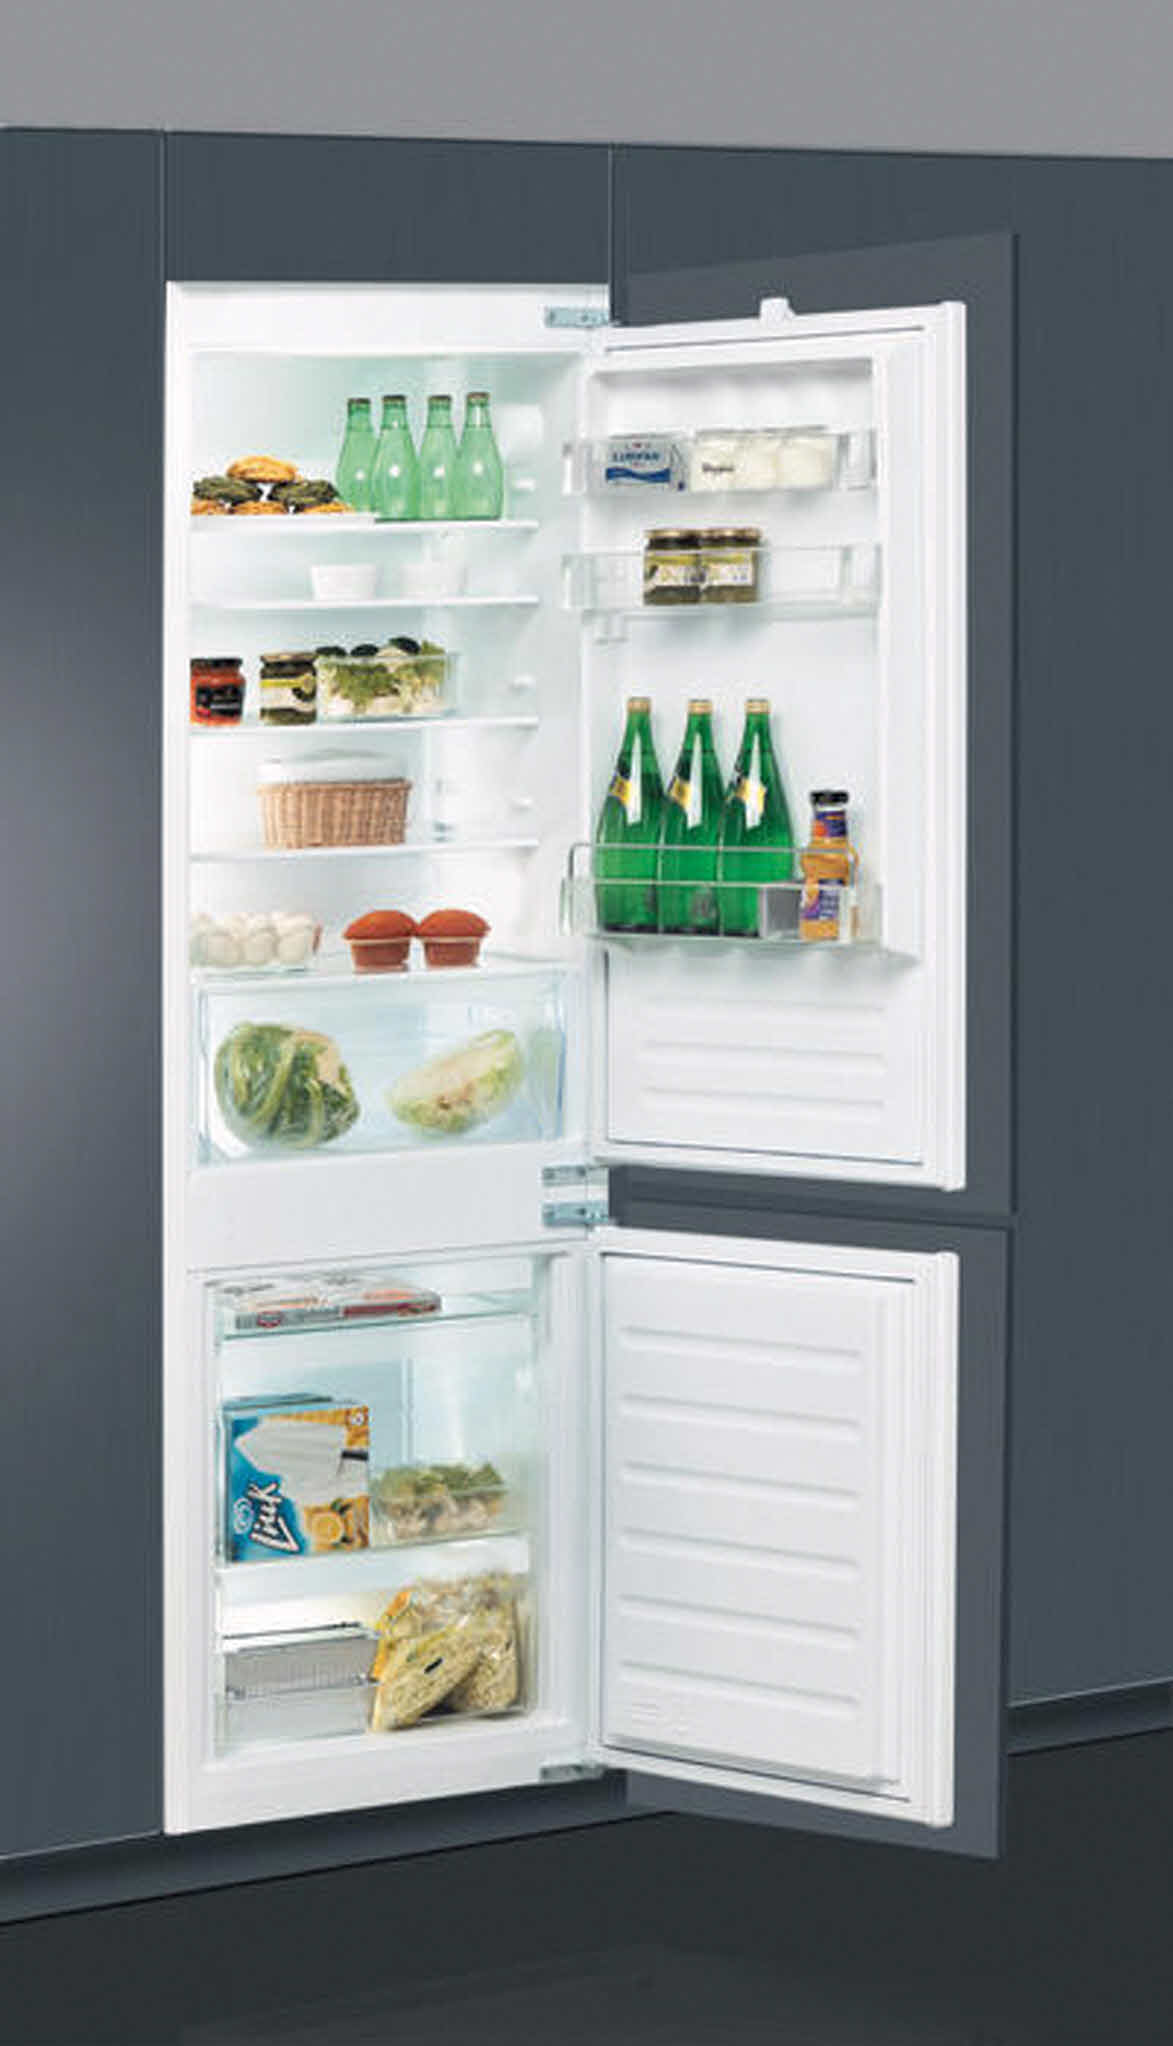 buy fridges and freezers in london whirlpool art6502 a. Black Bedroom Furniture Sets. Home Design Ideas